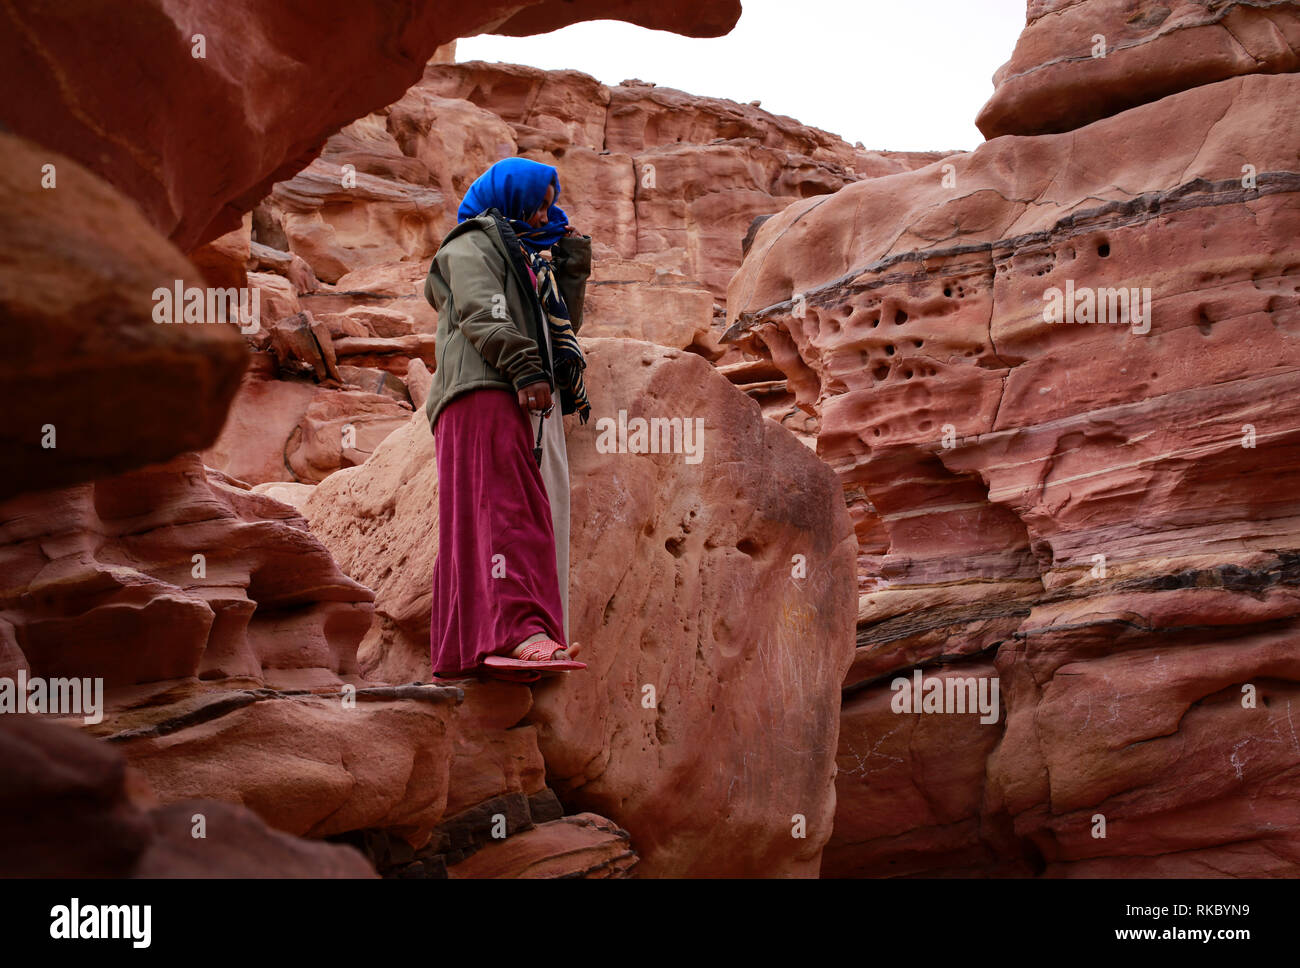 A Bedouin girl stands on rock formations in Egypt's Coloured Canyon, located near the Sinai town of Nuweiba, Egypt. (Photo/Hasan Jamali) - Stock Image